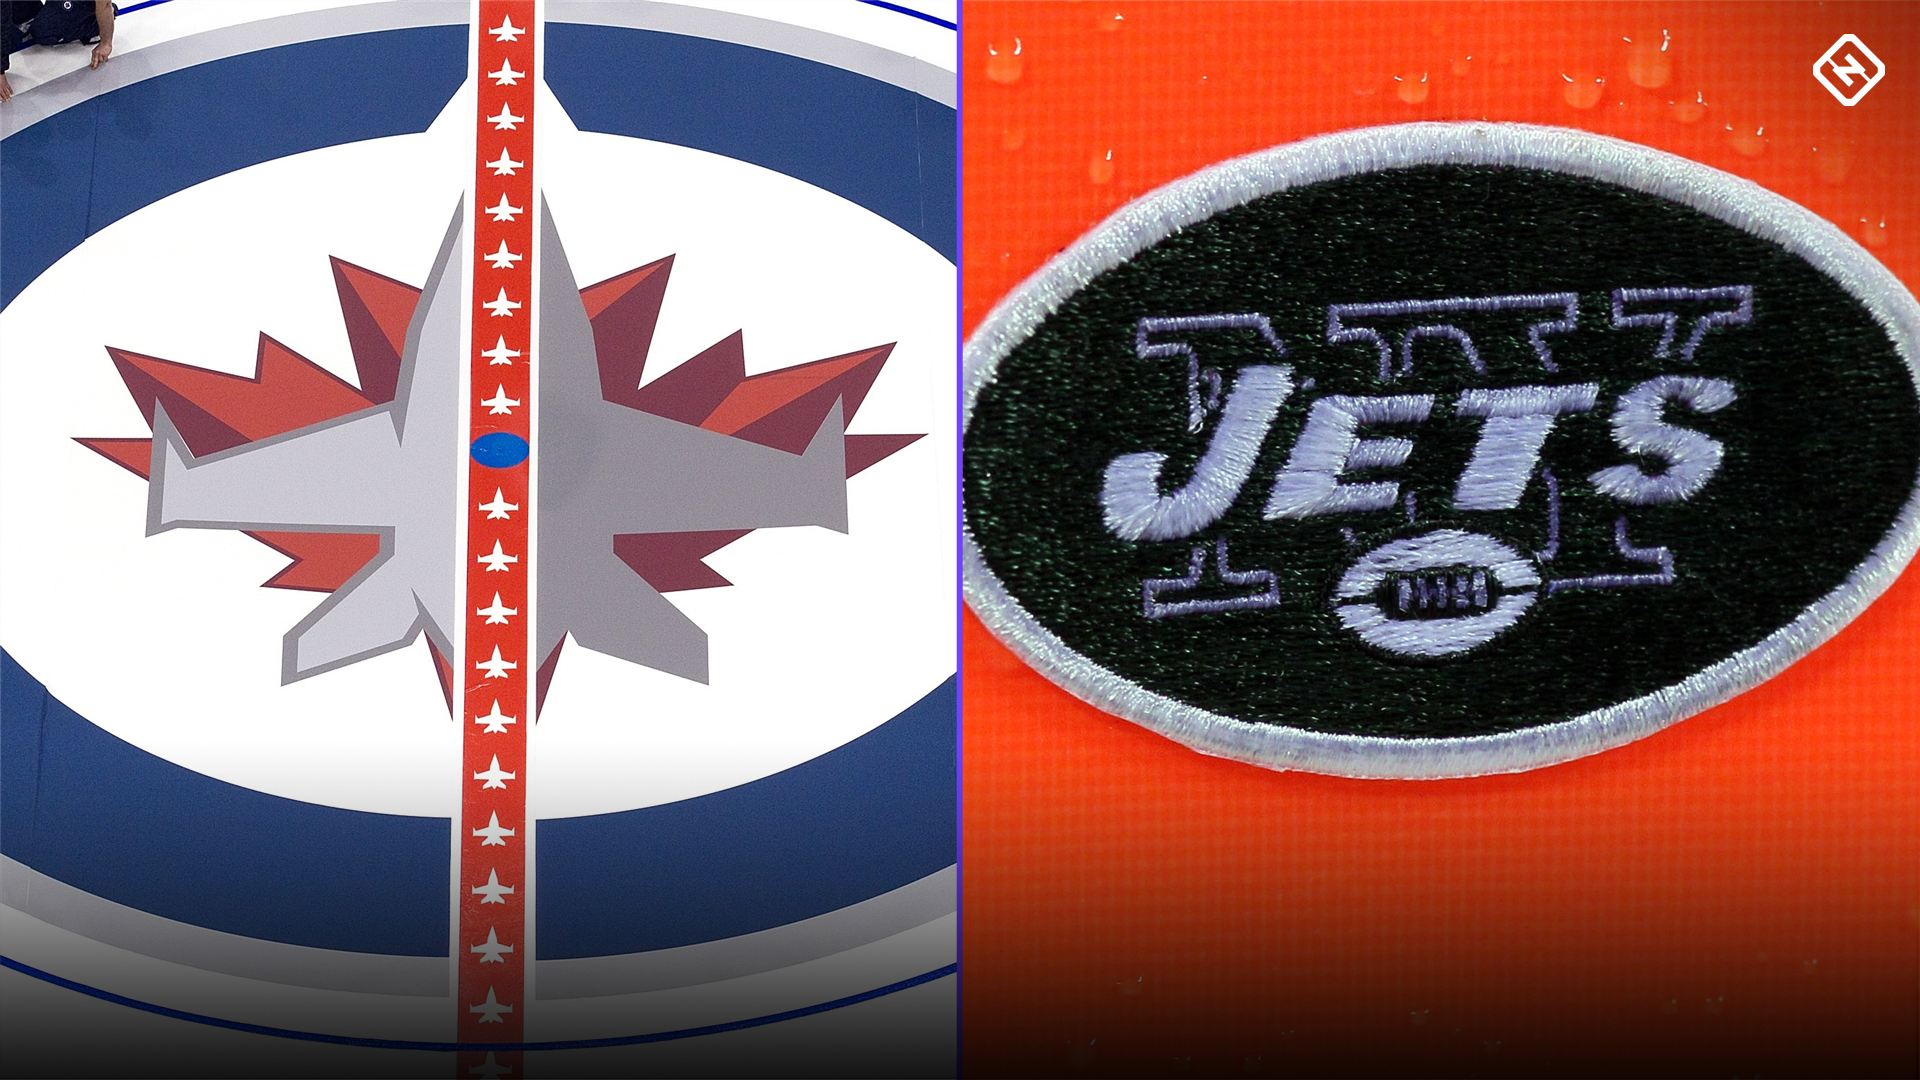 Chicago Tribune mistakes Winnipeg Jets for NFL's Jets — and it's kind of awkward